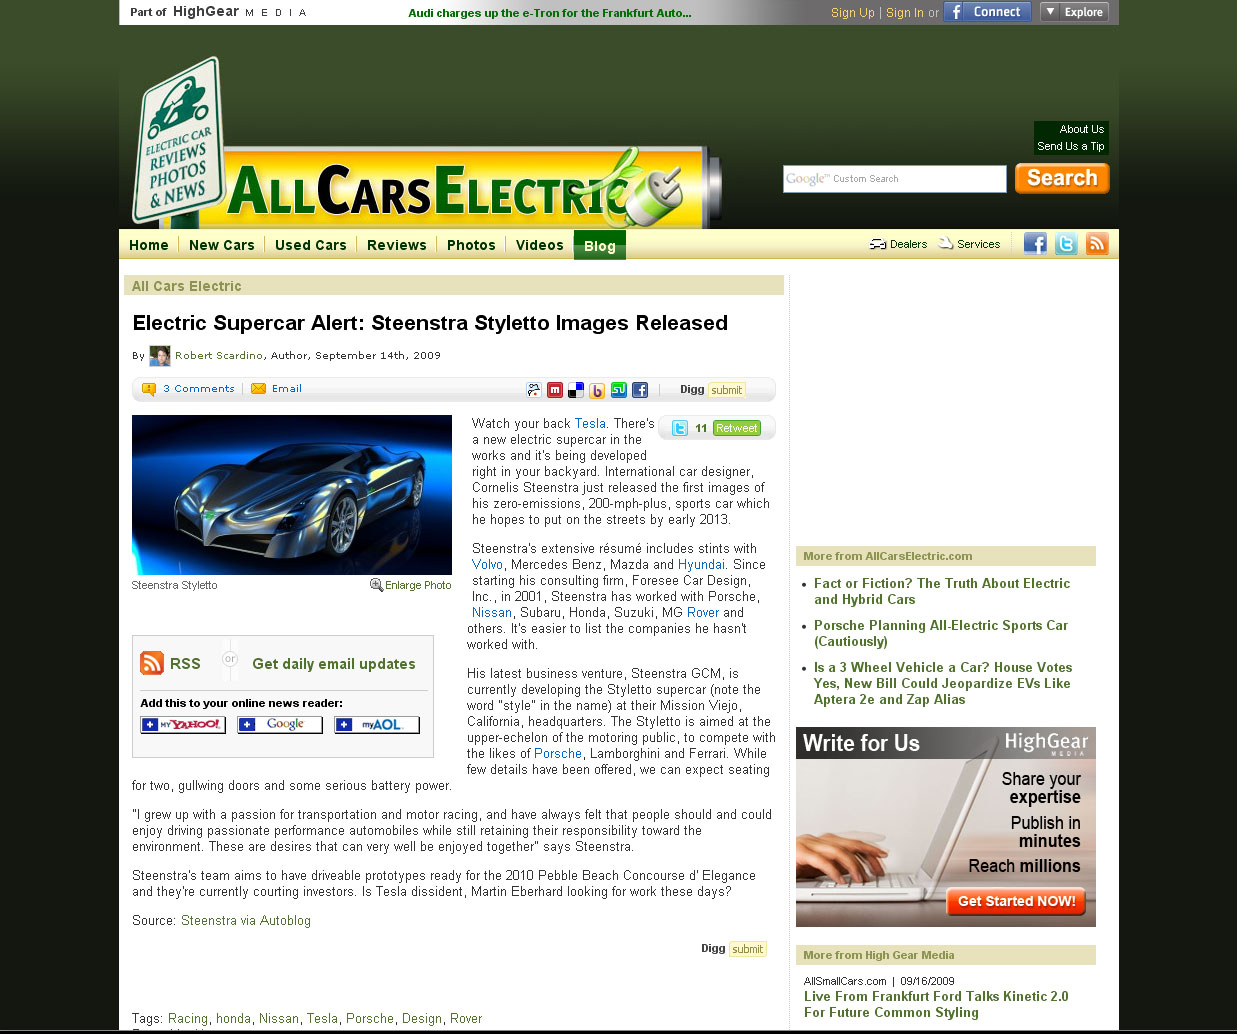 allcarselectric